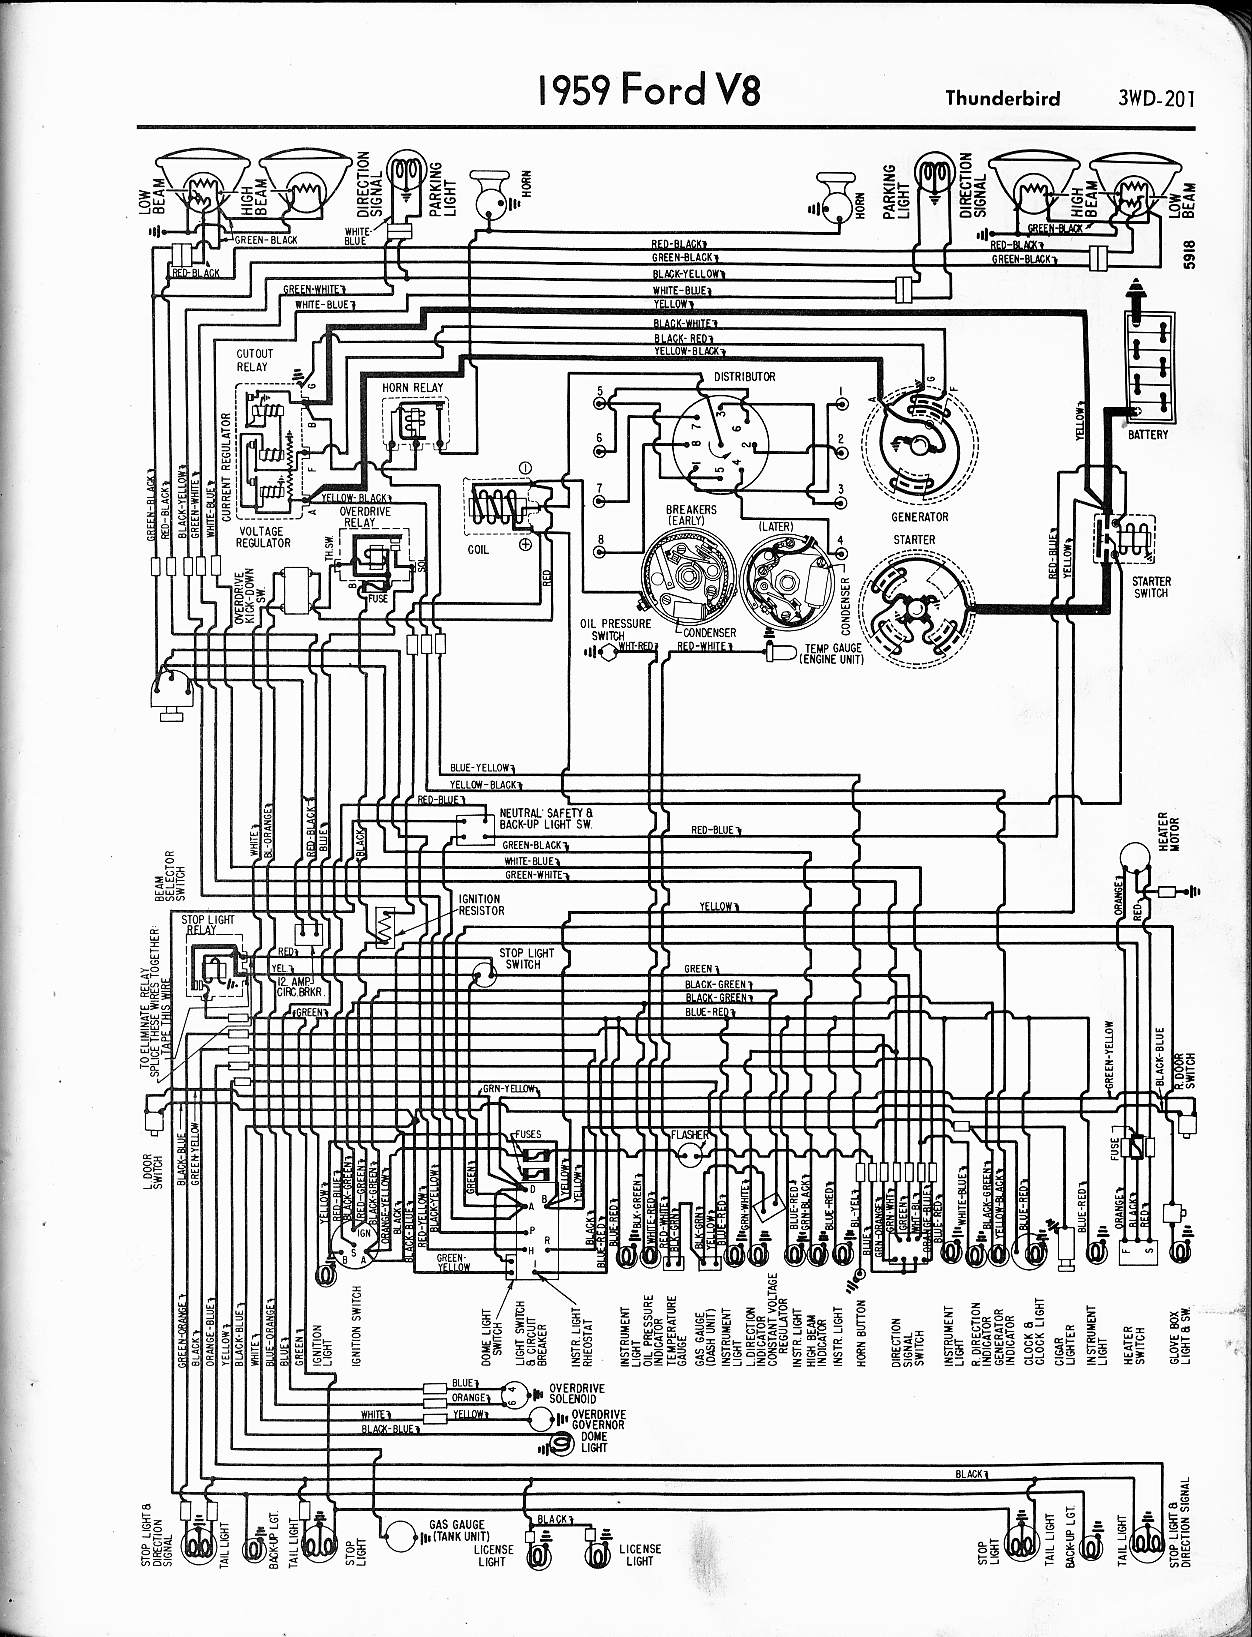 C6 Corvette Fuse Box Diagram Archive Of Automotive Wiring Ex250 1956 Data Schema Rh Site De Joueurs Com